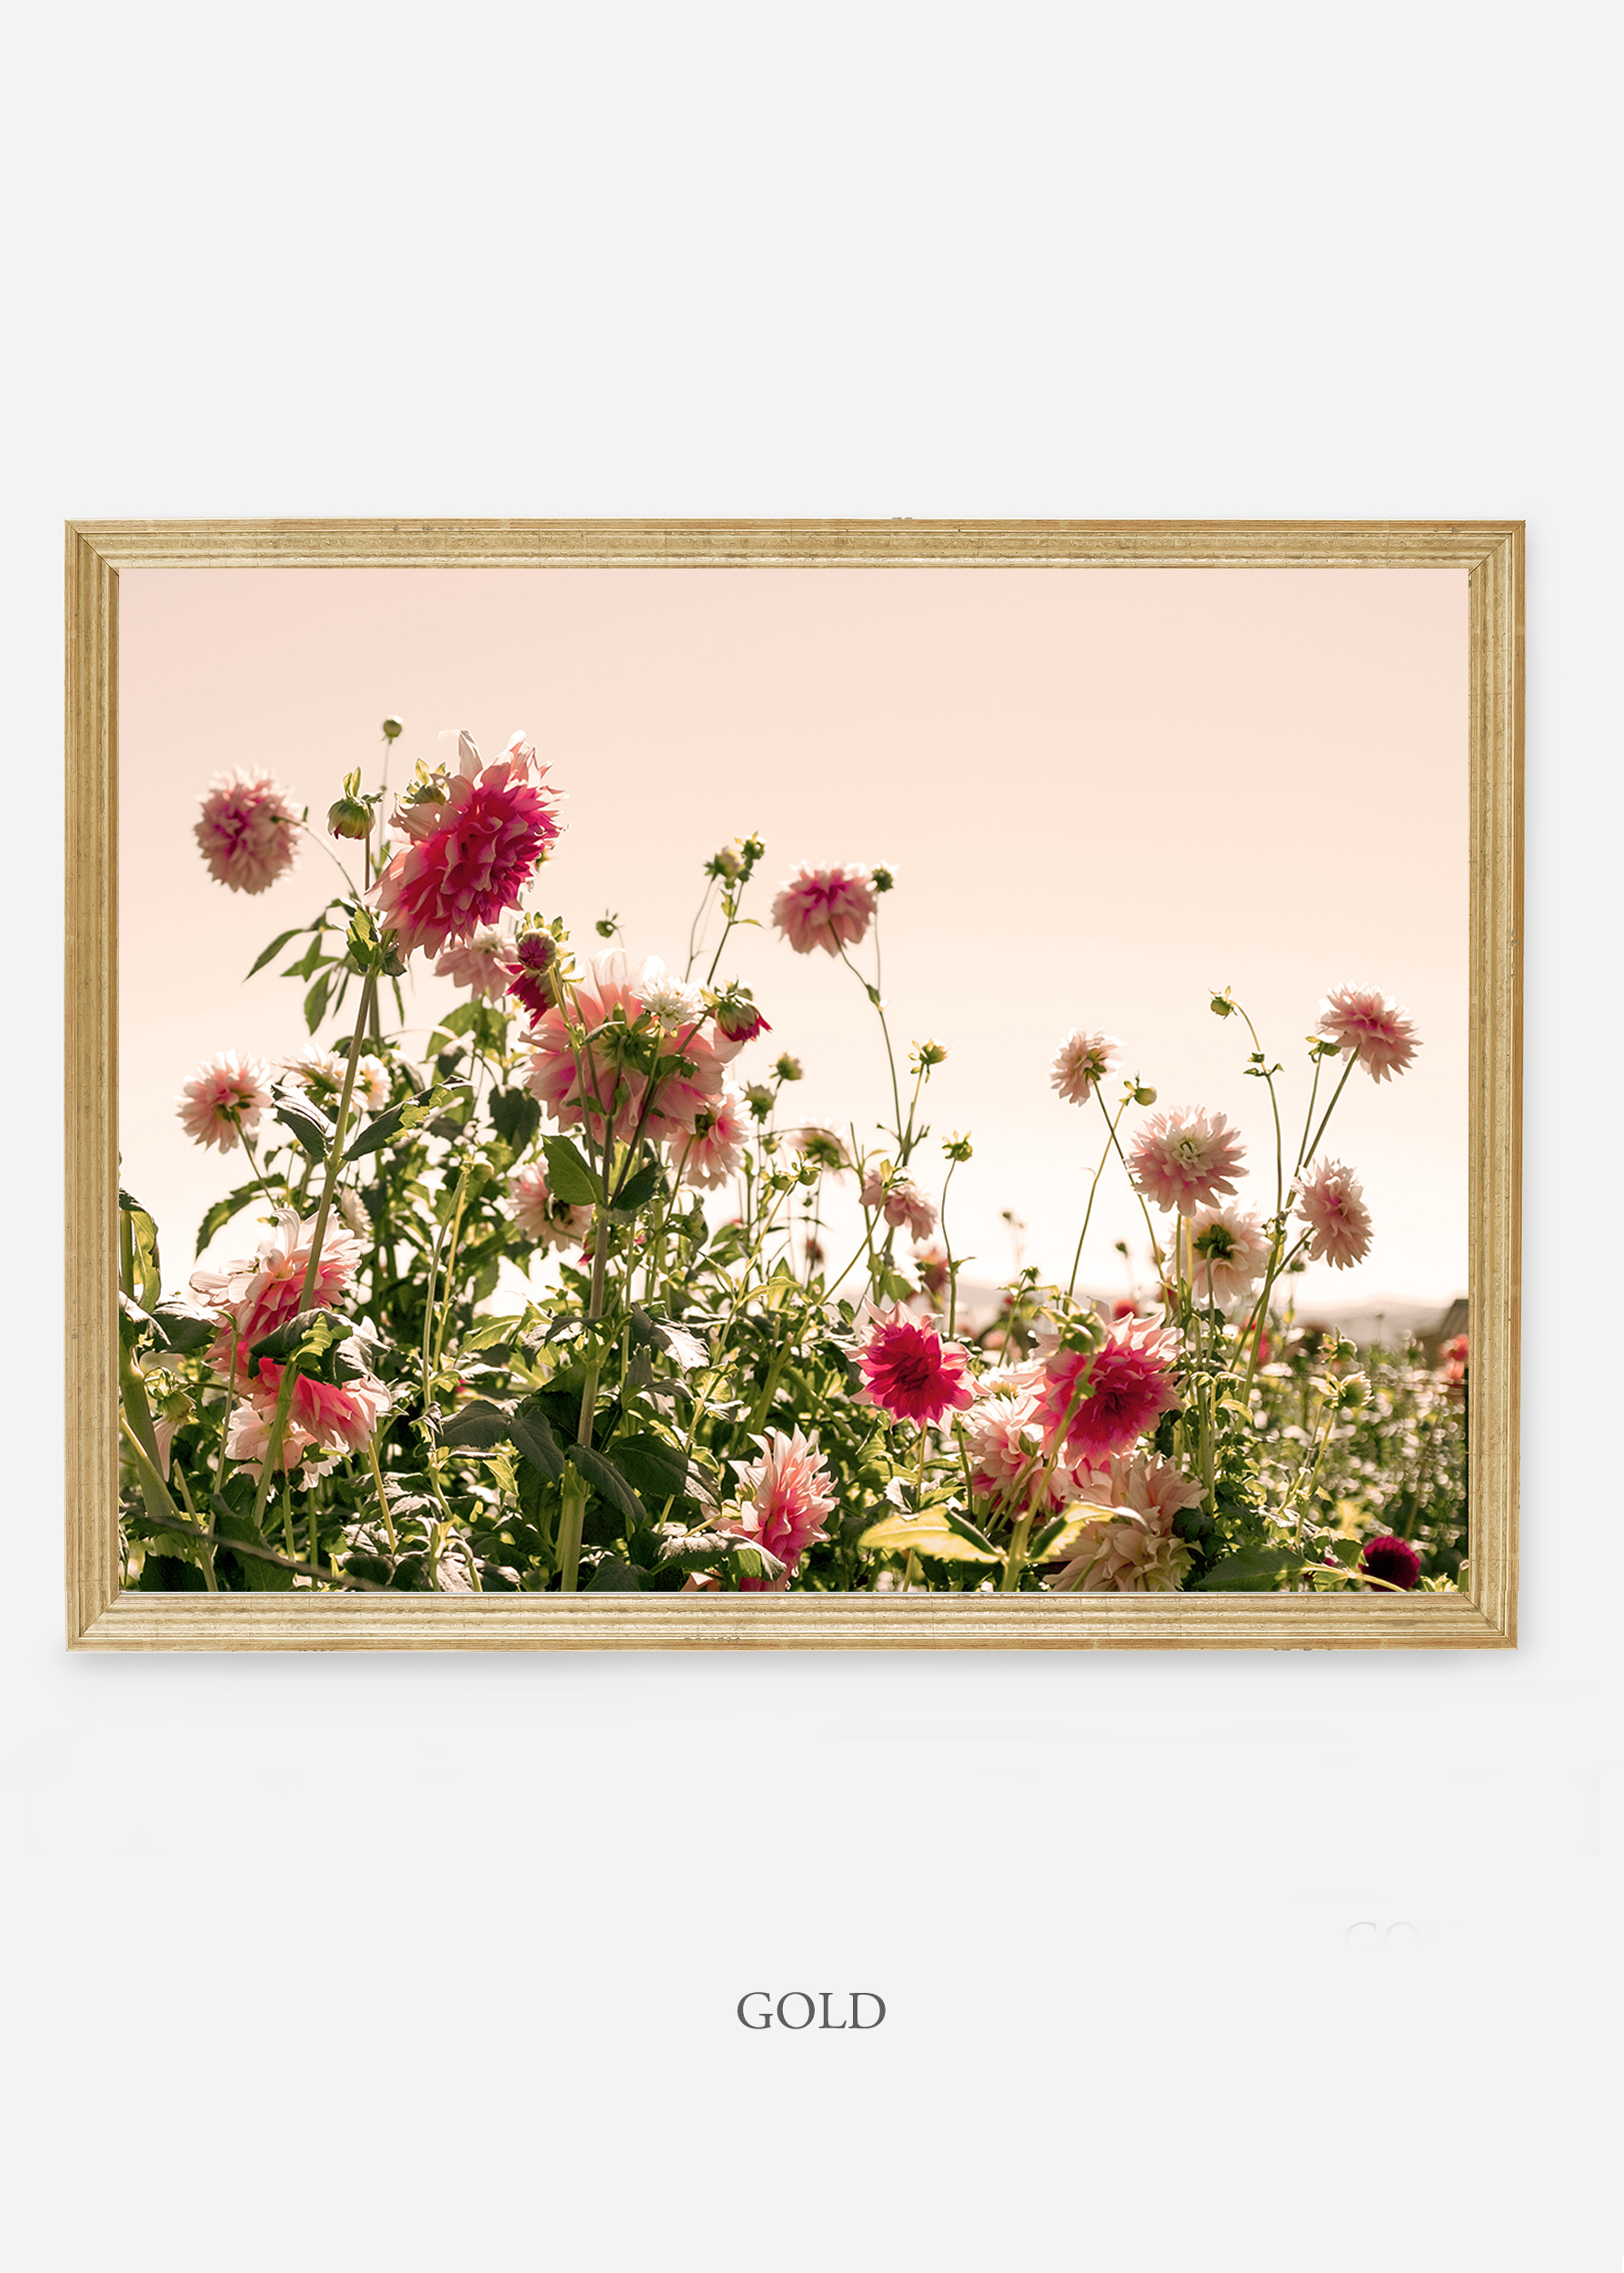 NoMat-Gold-Frame-DahliaNo.7-Wilder-California-Art-Floral-Home-decor-Prints-Dahlia-Botanical-Artwork-Interior-design.jpg